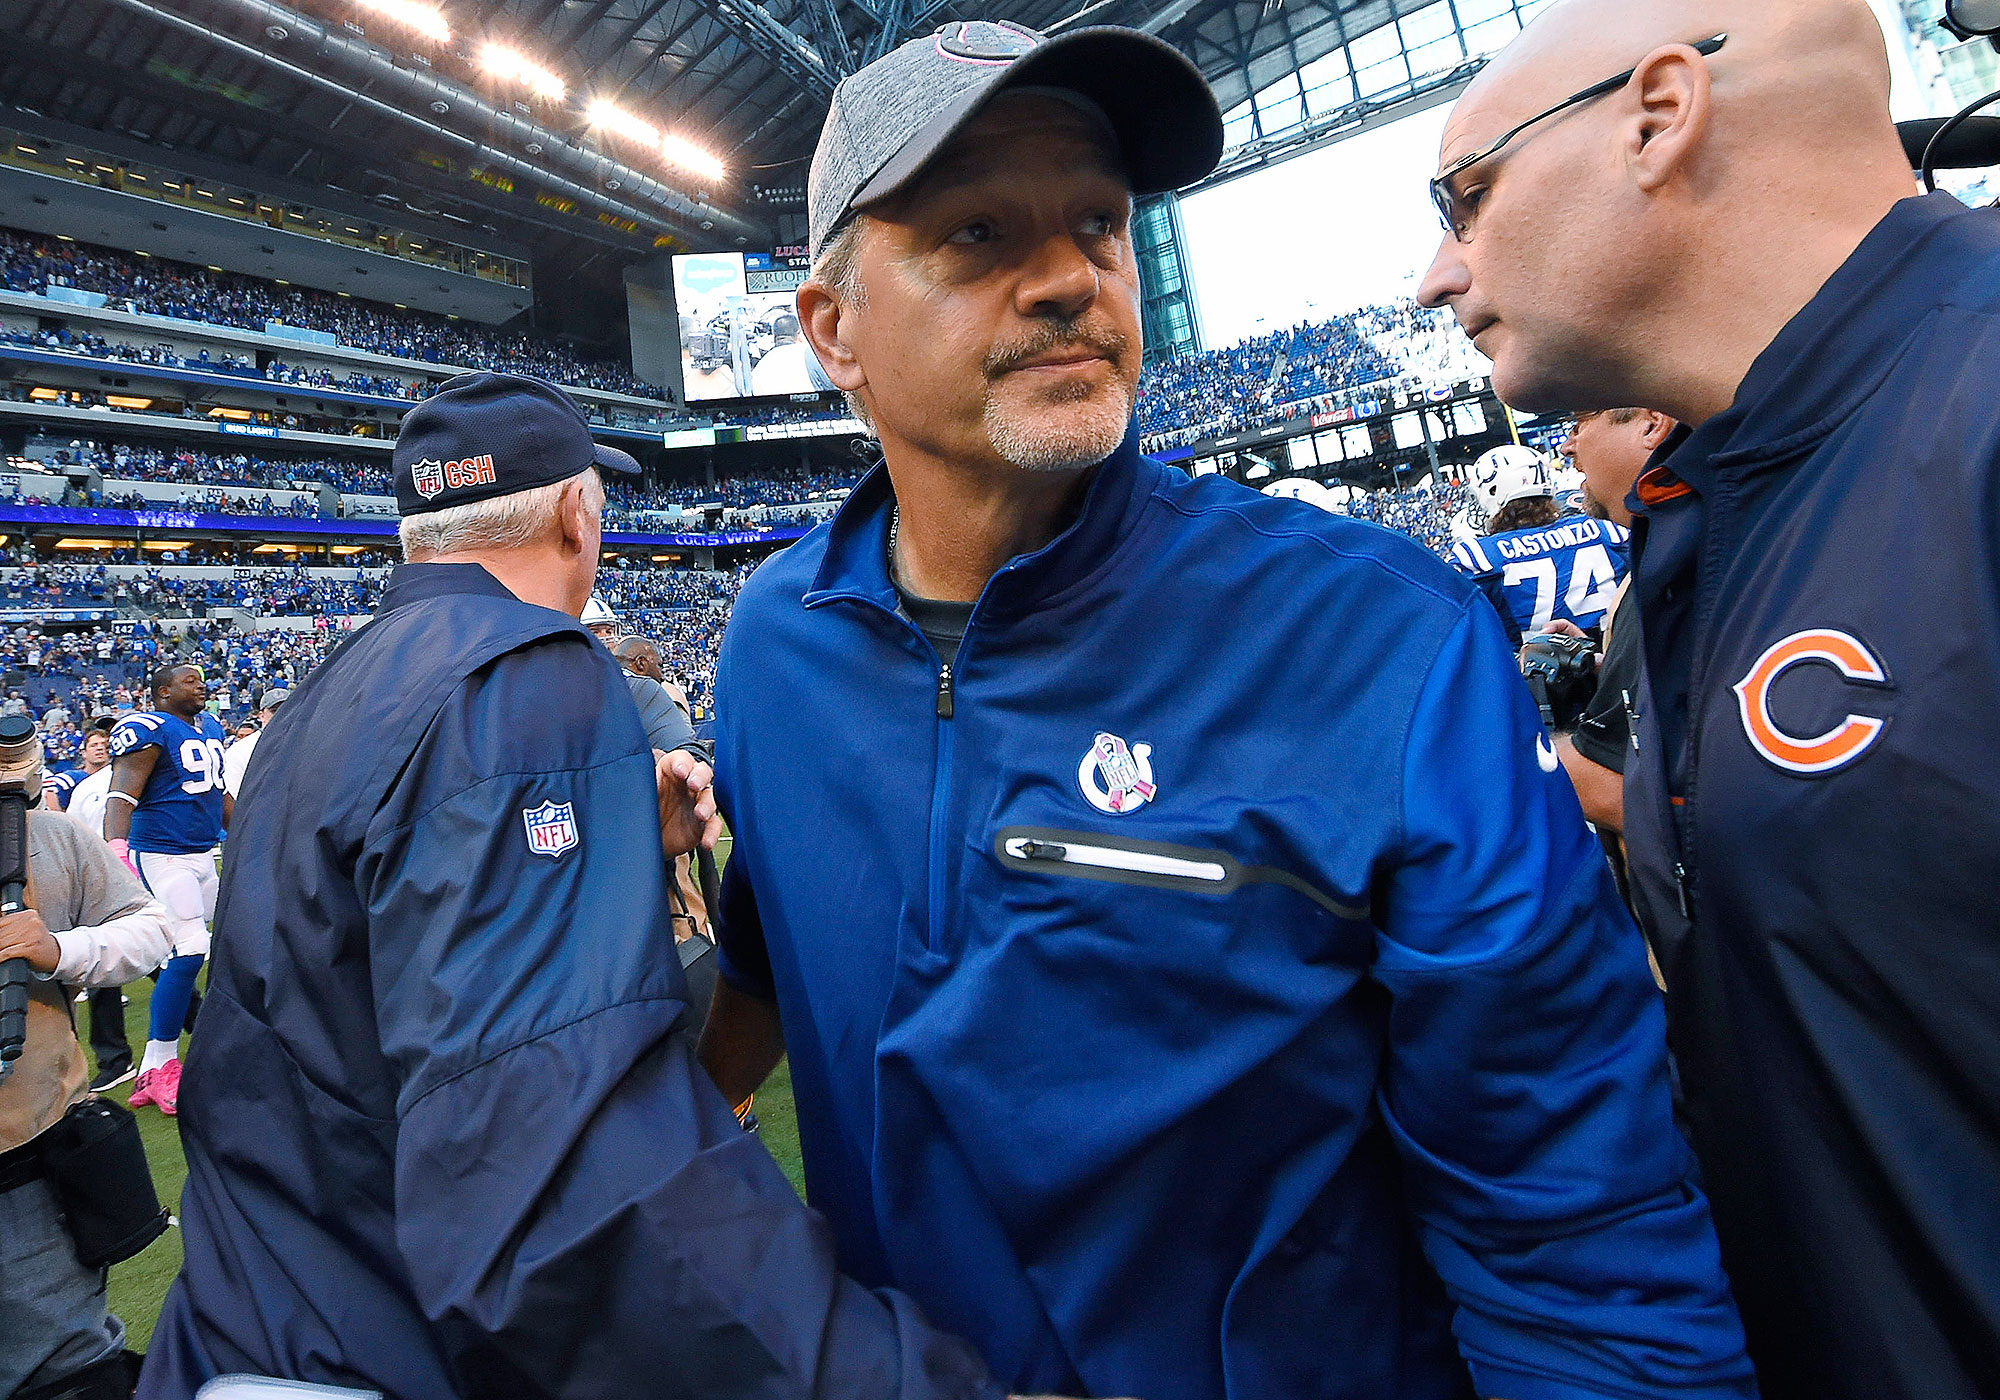 All signs point to this being the end of the road for Pagano even if the Colts win their division. Pagano staved off being fired late last year, but frustratingly familiar results make it likely his time will come this year. It's tough to figure out how much of the blame he should shoulder, though. Colts GM Ryan Grigson's miserable drafts in recent years have contributed to the stagnation, and many (rightly) feel his seat should be just as warm, if not hotter. But in the NFL world of 2016, the buck stops with the head coach. The Colts made the wild-card round, then the divisional round, then the AFC title game in consecutive seasons, but they finished 8–8 last year and seem destined for another finish around .500. Indianapolis clearly has something special in Andrew Luck, and the franchise won't give Pagano a sixth year with him.